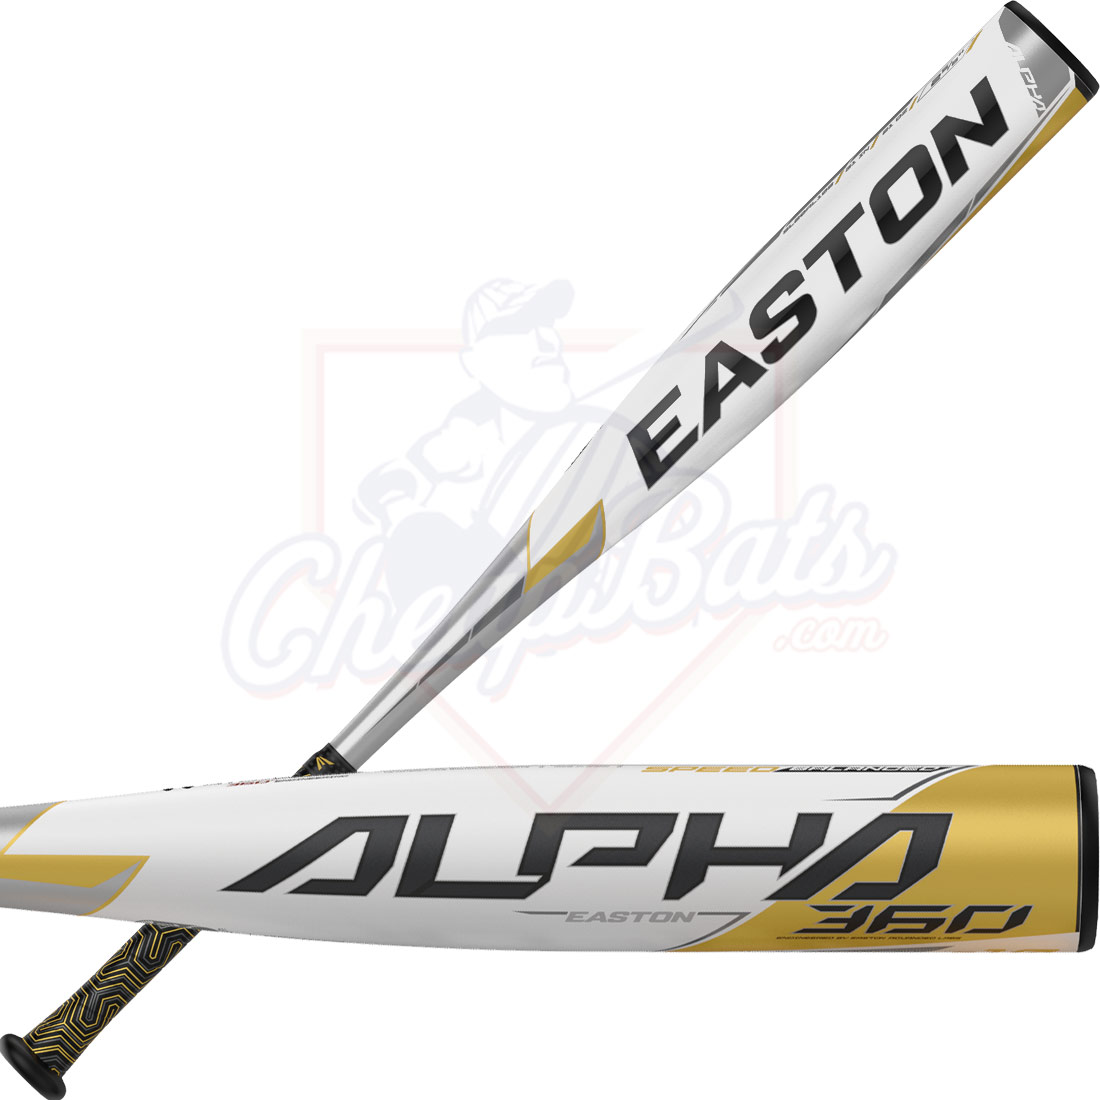 2020 Easton Alpha 360 Youth USSSA Baseball Bat